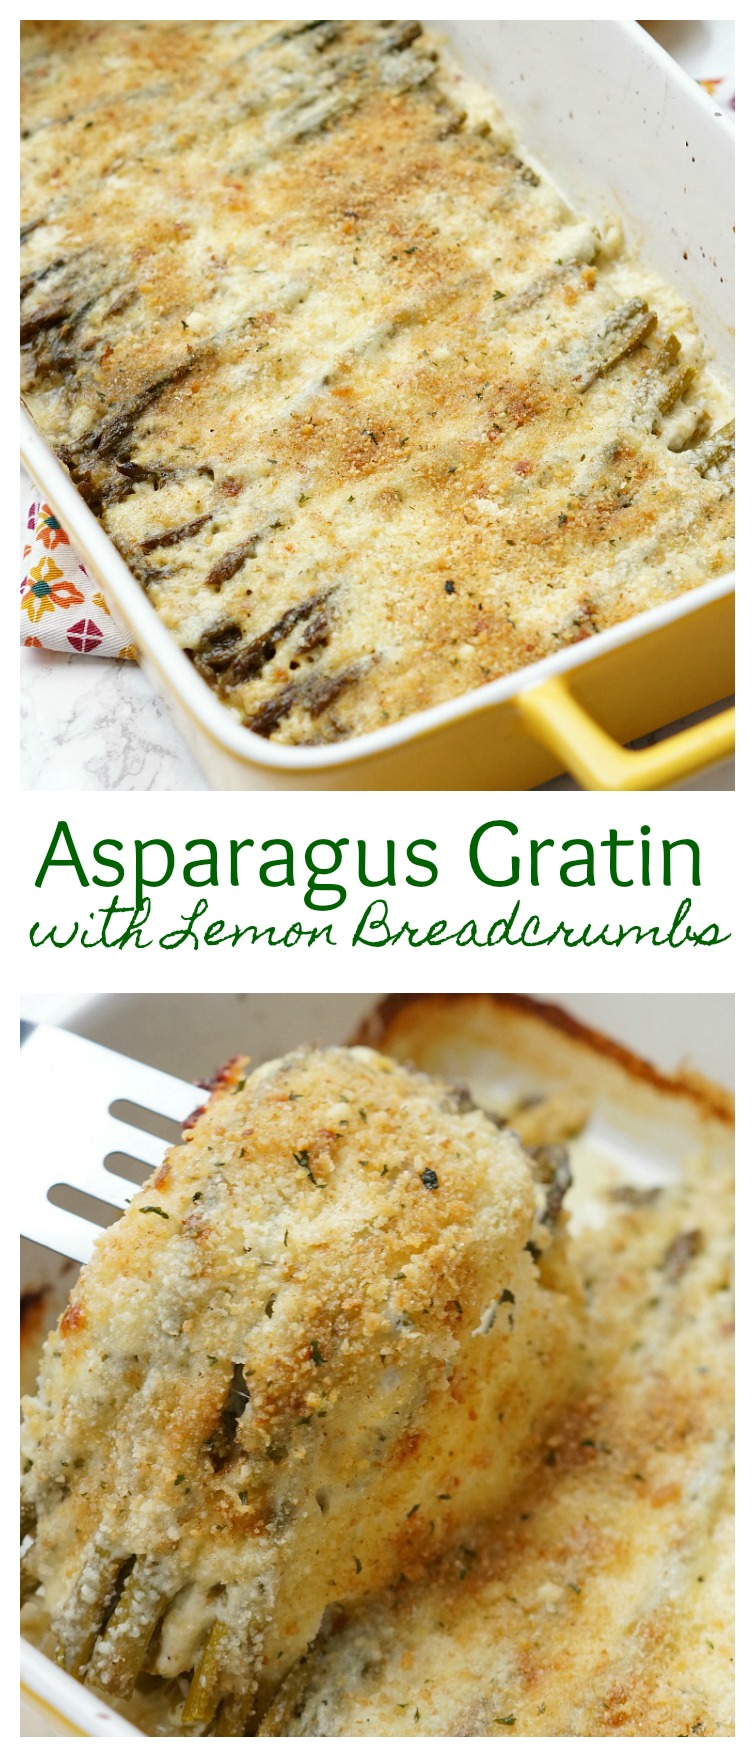 Asparagus Gratin with Lemon Breadcrumbs, an easy asparagus side dish recipe! Layers of roasted asparagus, cheese, and lemony breadcrumbs!